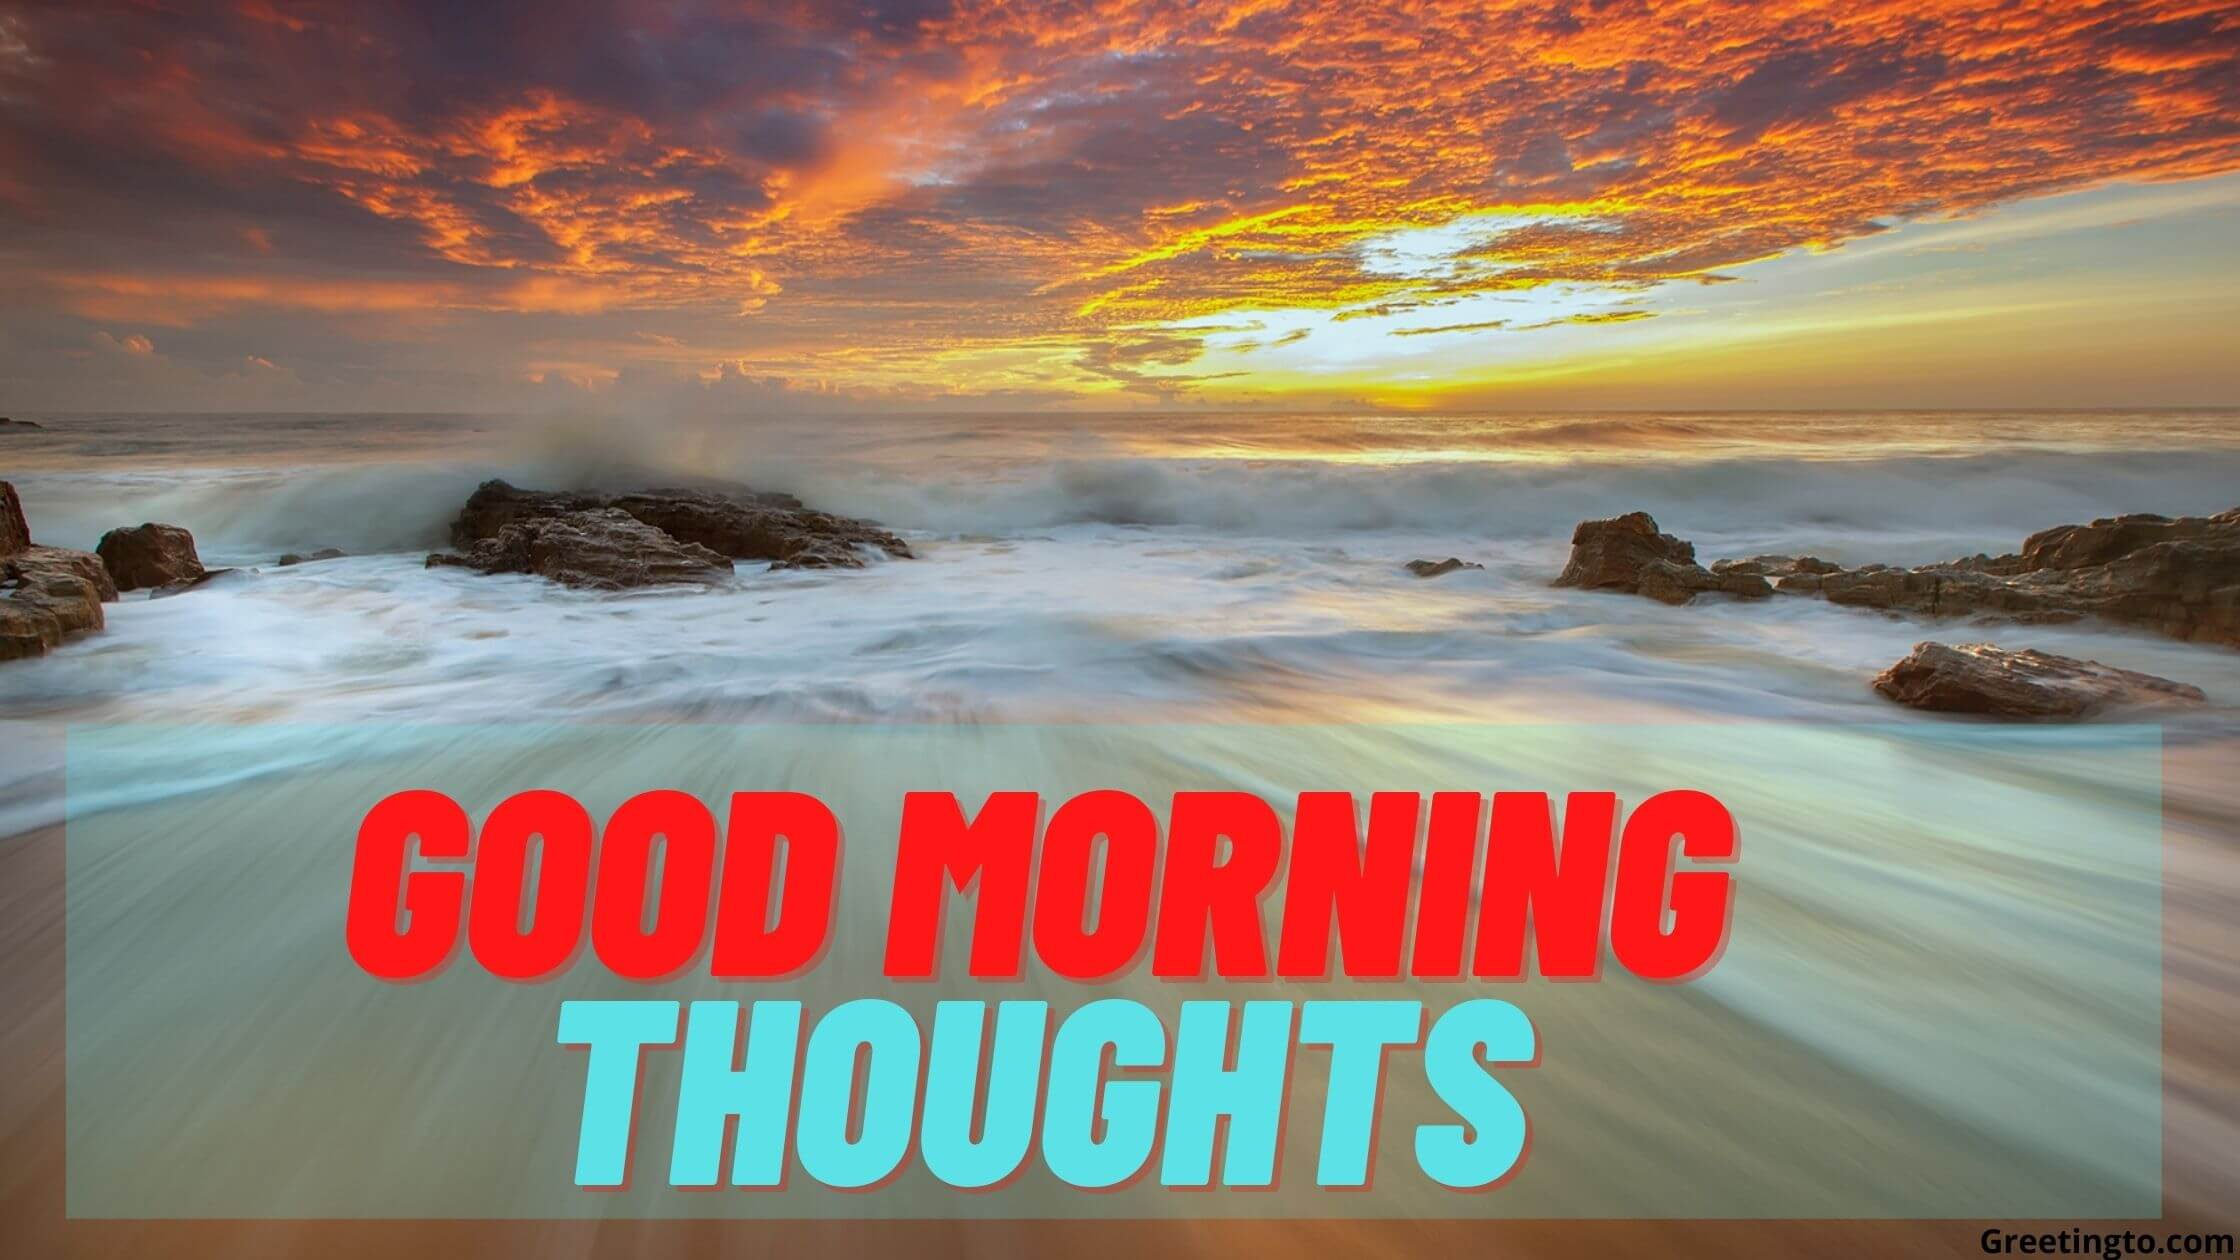 Good morning thoughts featured photo for the day